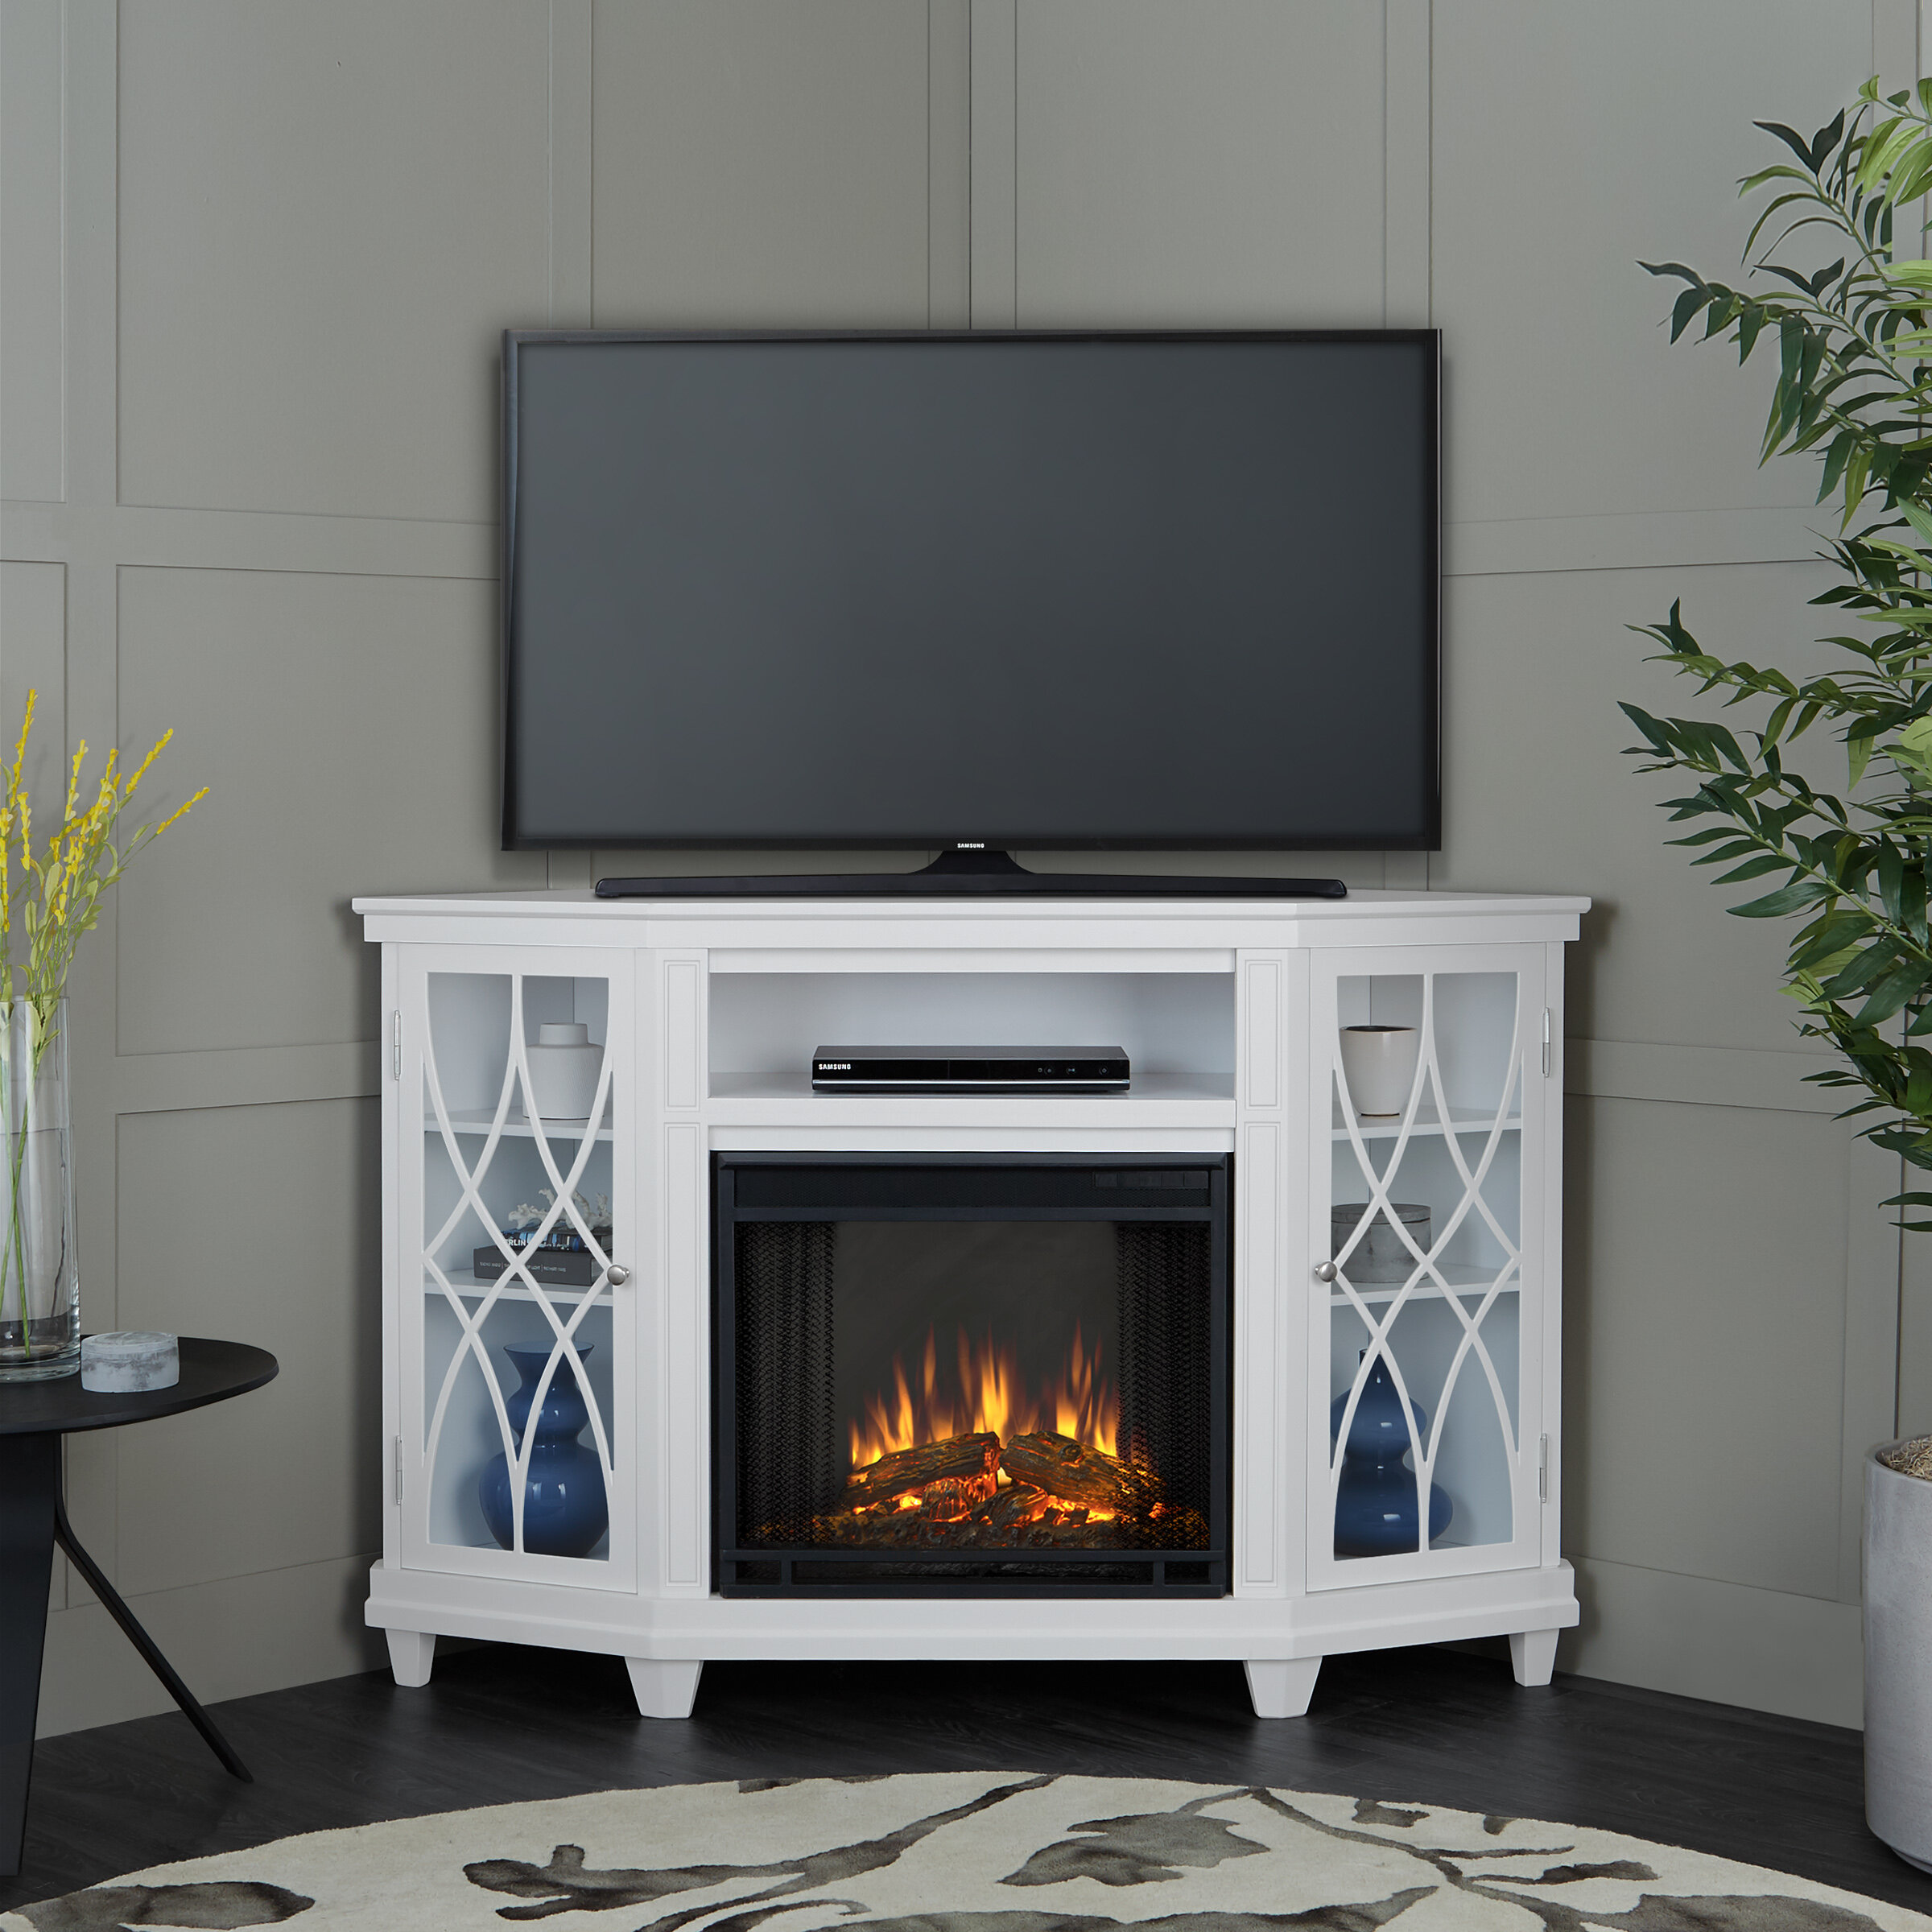 Real Flame Lynette Tv Stand For Tvs Up To 55 With Fireplace